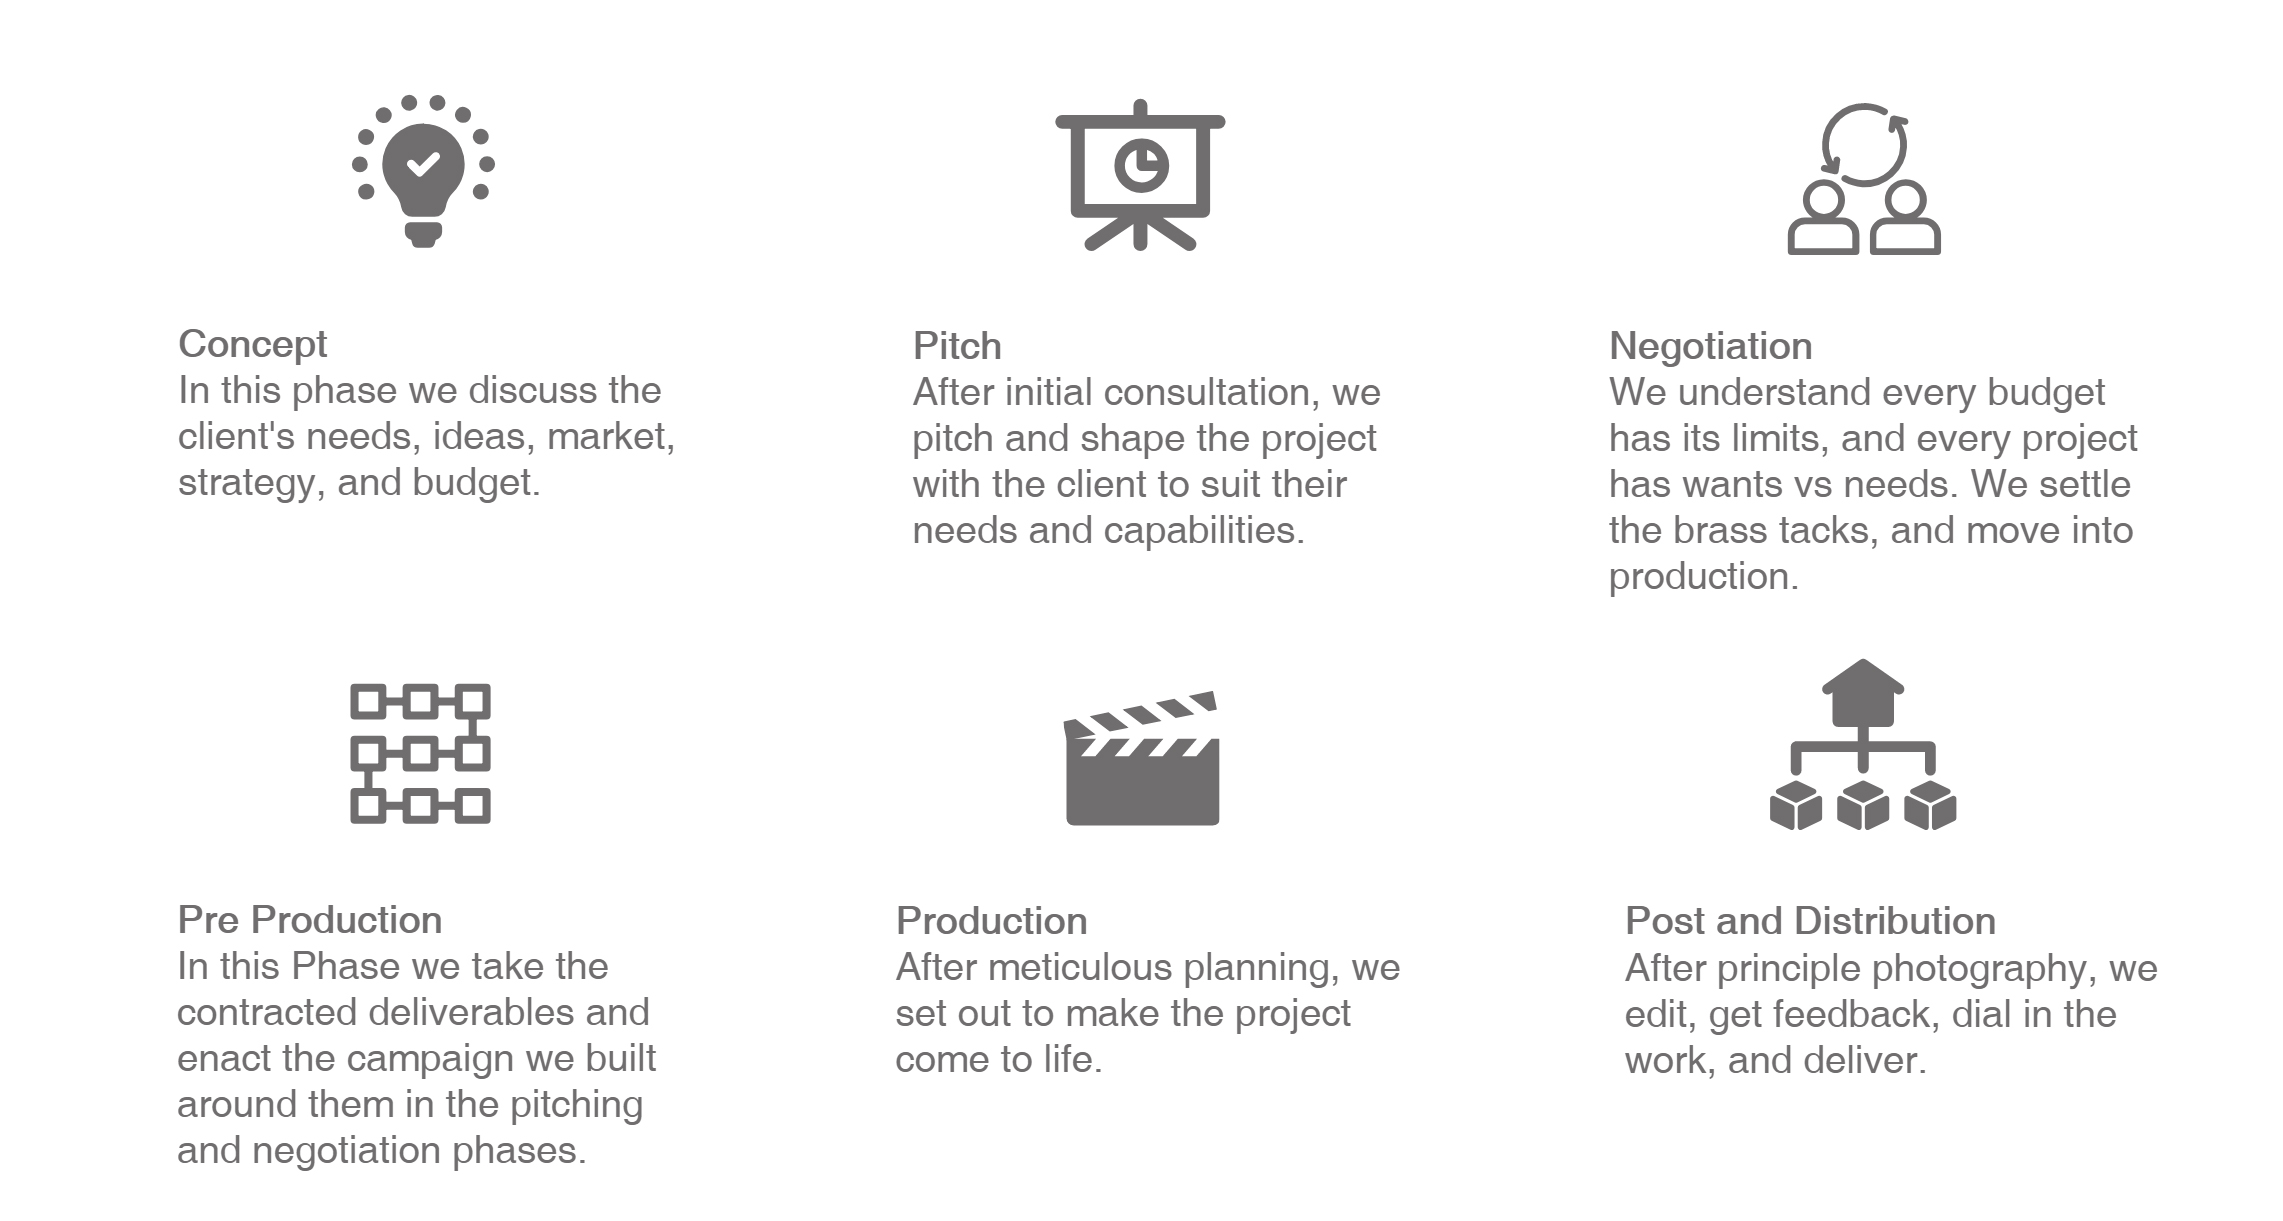 Production_Process_Icons.jpg